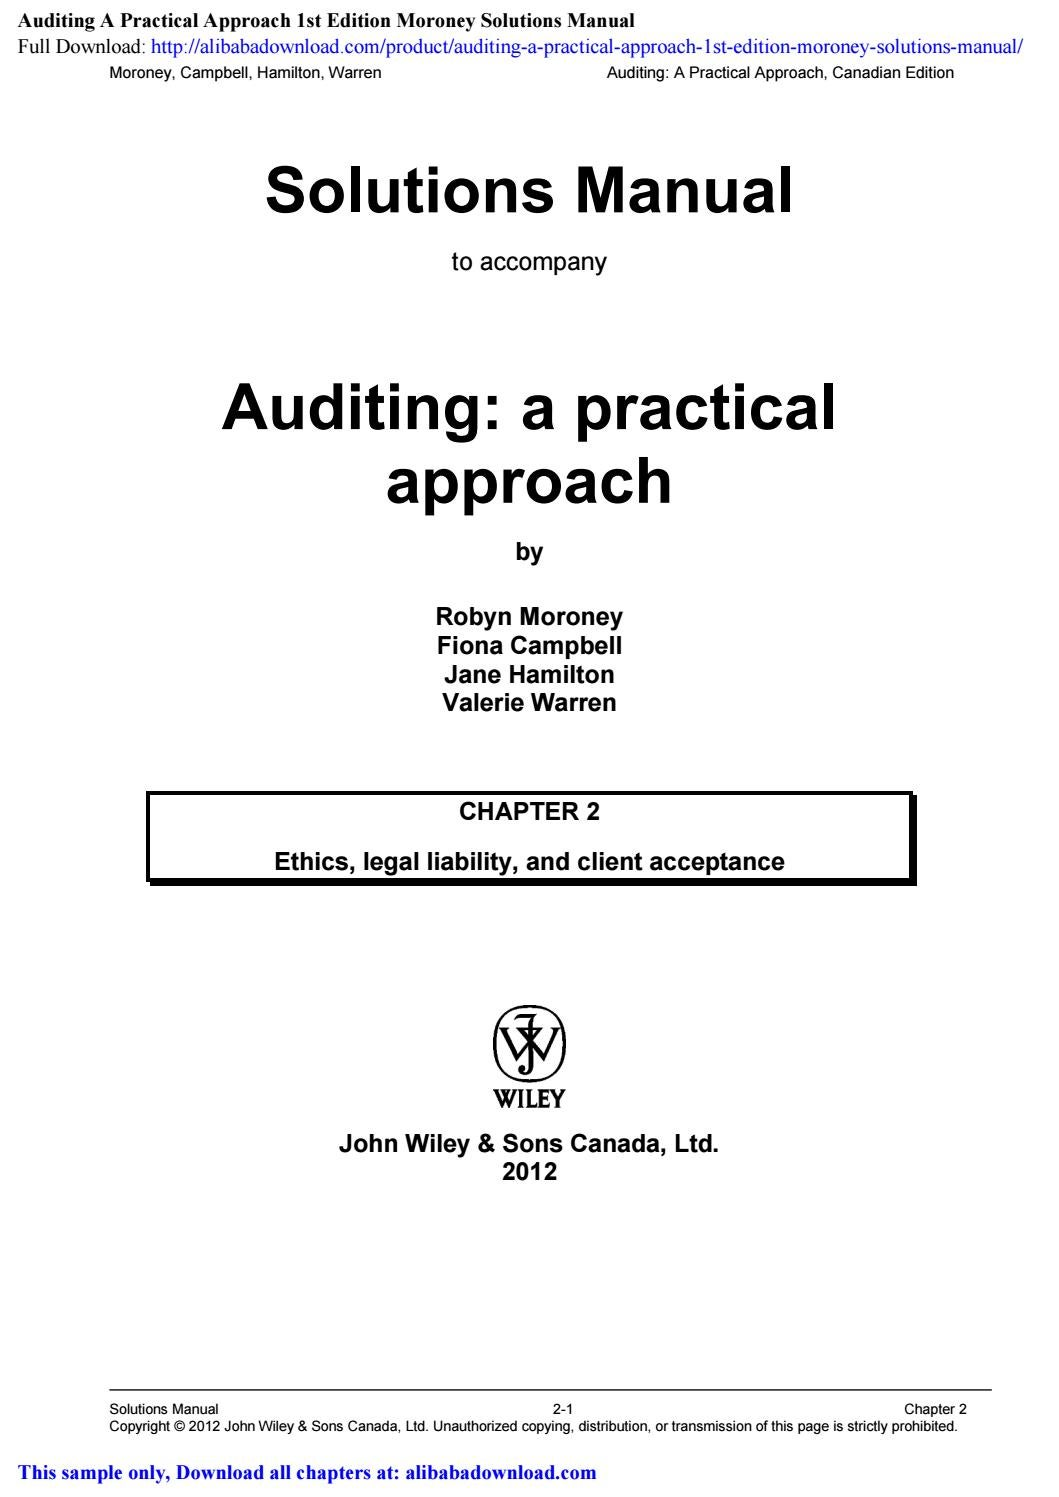 Auditing A Practical Approach 1st Edition Moroney